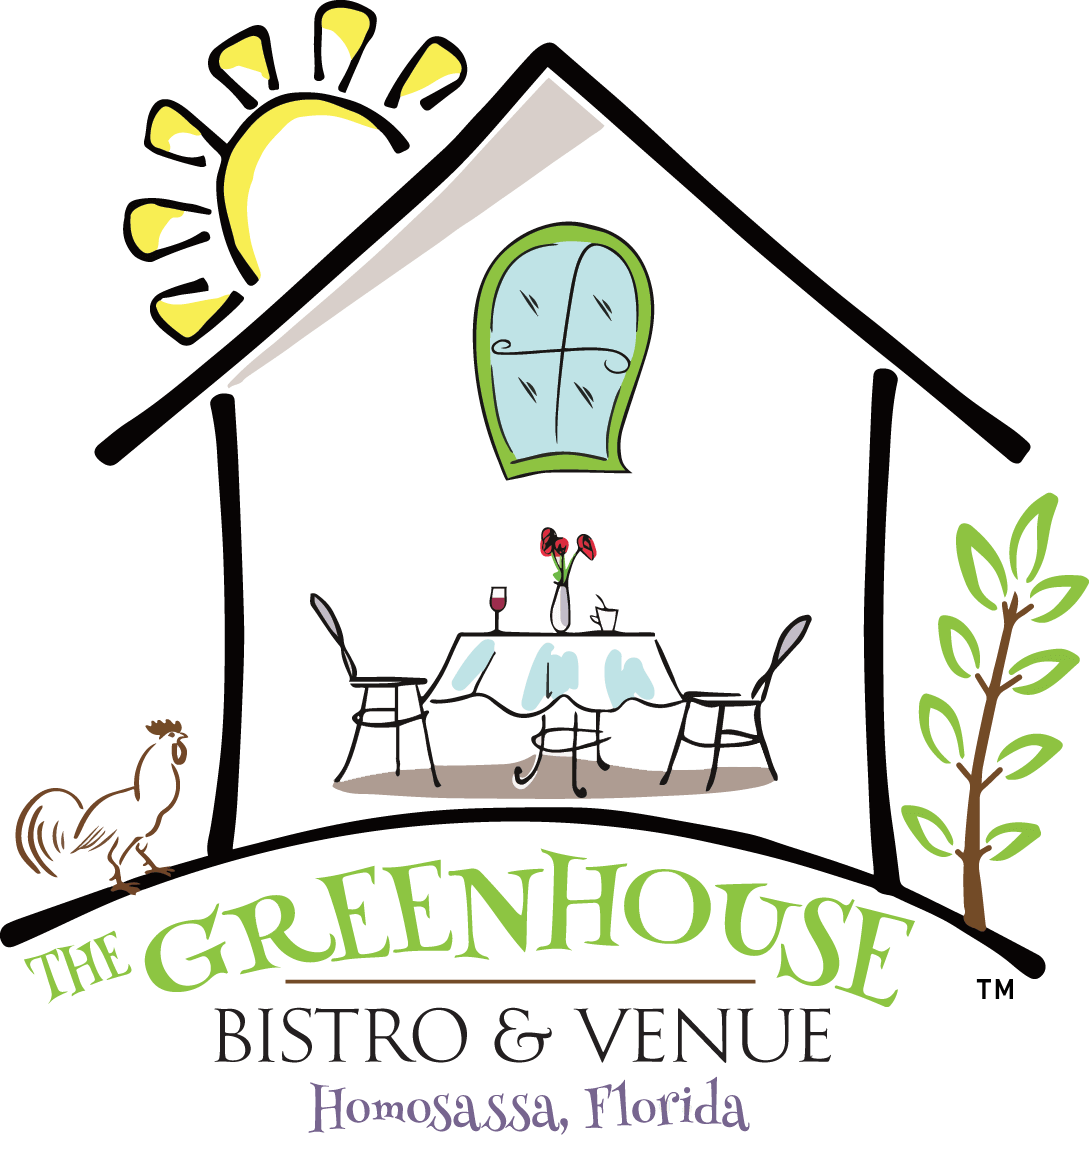 The Greenhouse Bistro & Venue logo